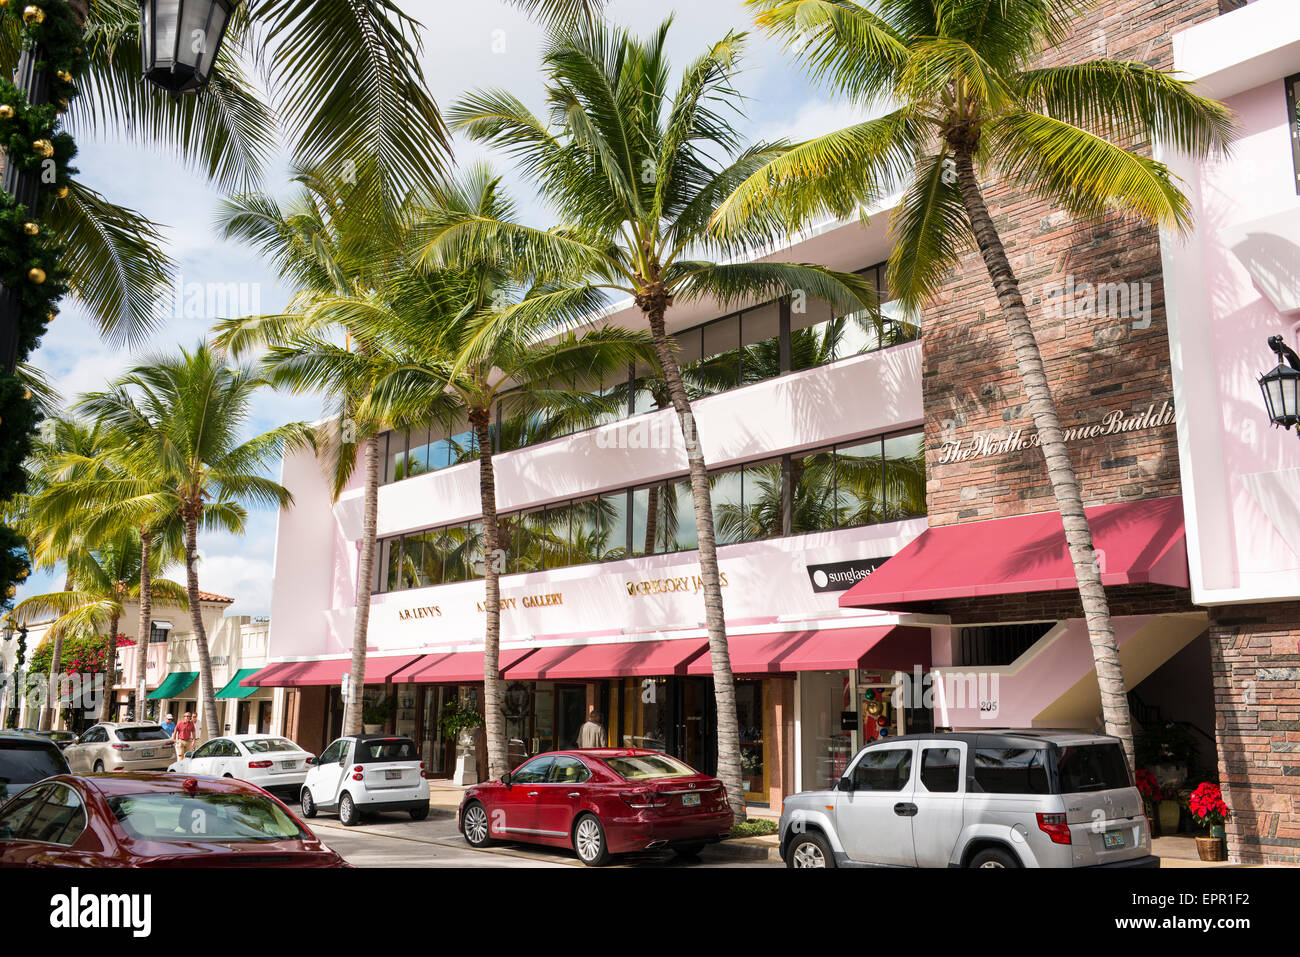 Florida Palm Beach Worth Avenue luxury shopping street road palm trees A B Levy auctioneers Stock Photo